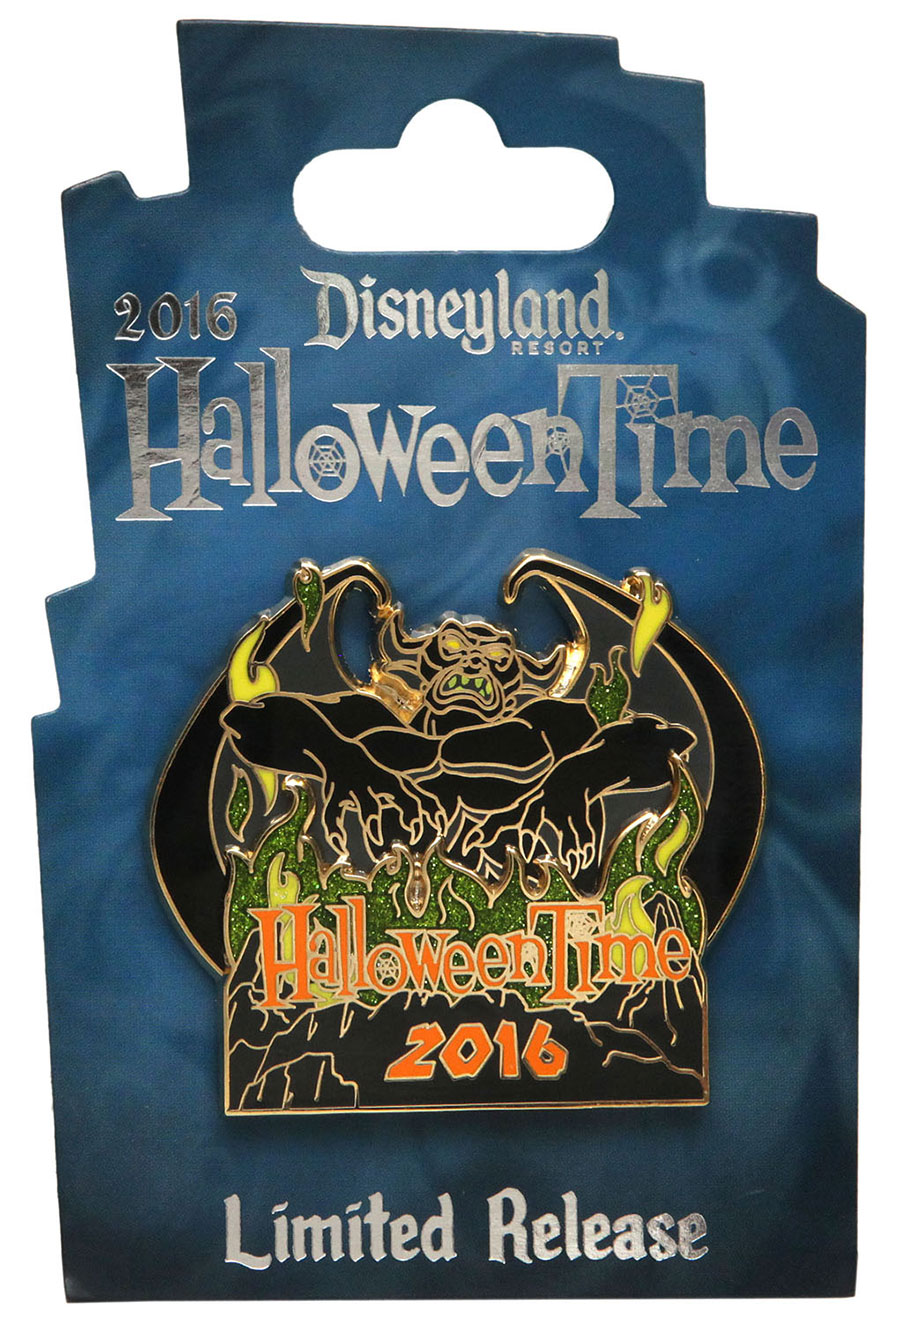 First Look at Halloween Time at the Disneyland Resort Products Coming in Fall 2016